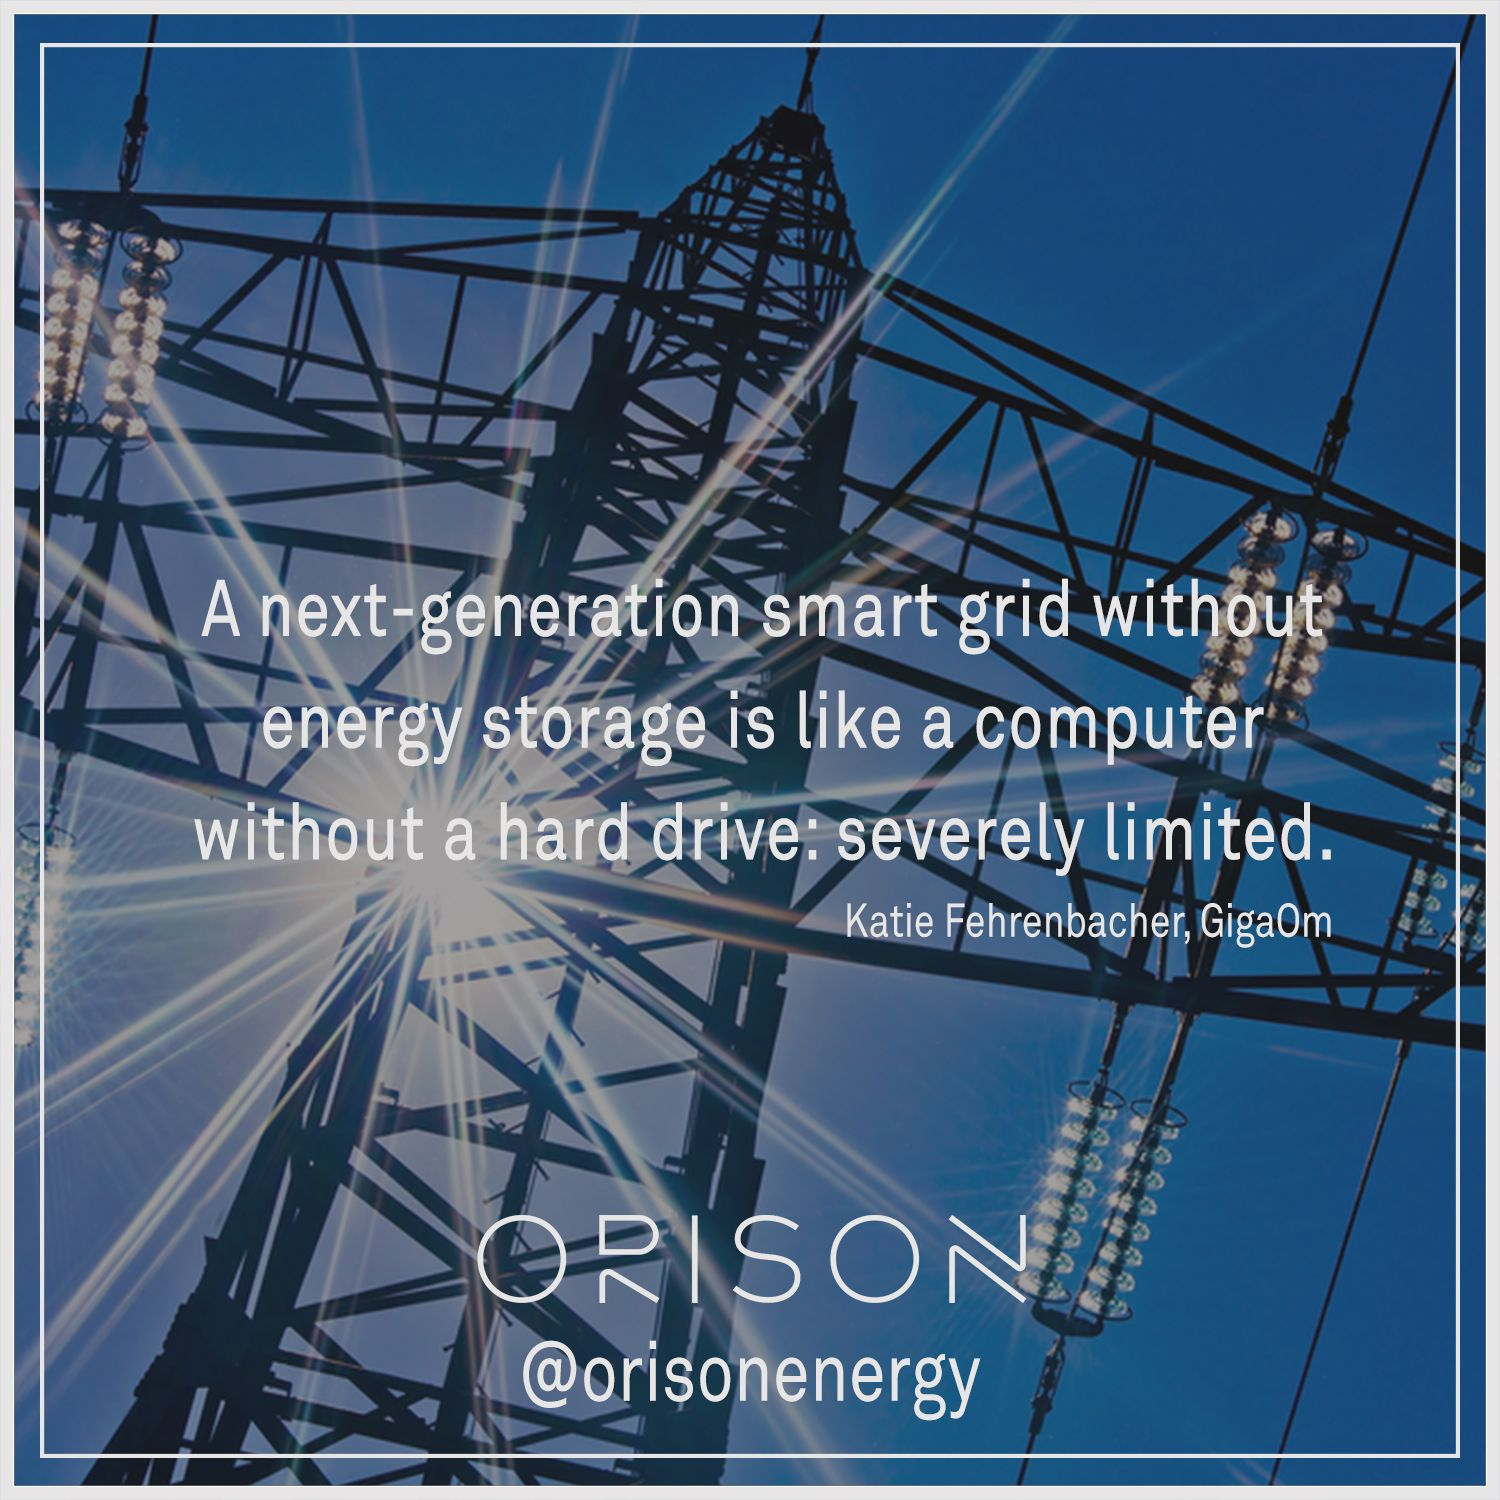 Don't limit yourself! #EnergyStorage #SmartGrid #TechTuesday